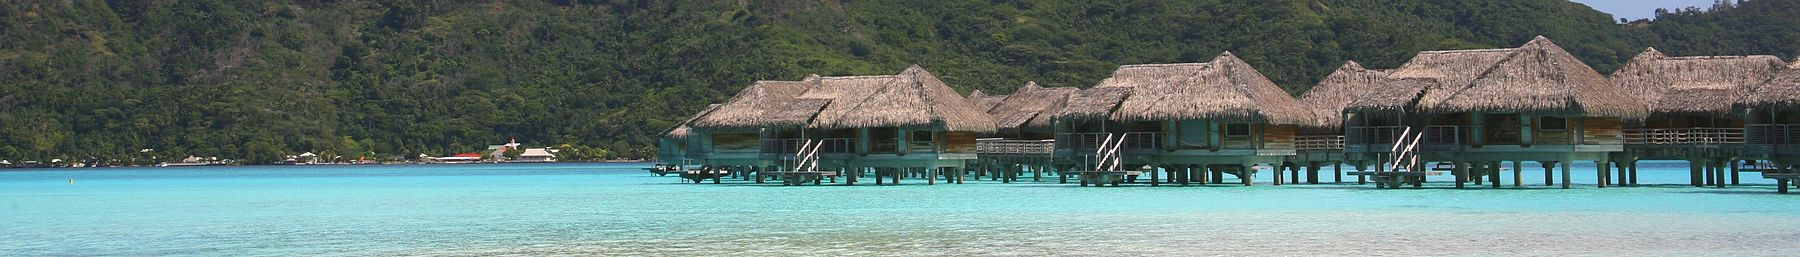 WV banner Society Islands Huts on water in Bora Bora.jpg